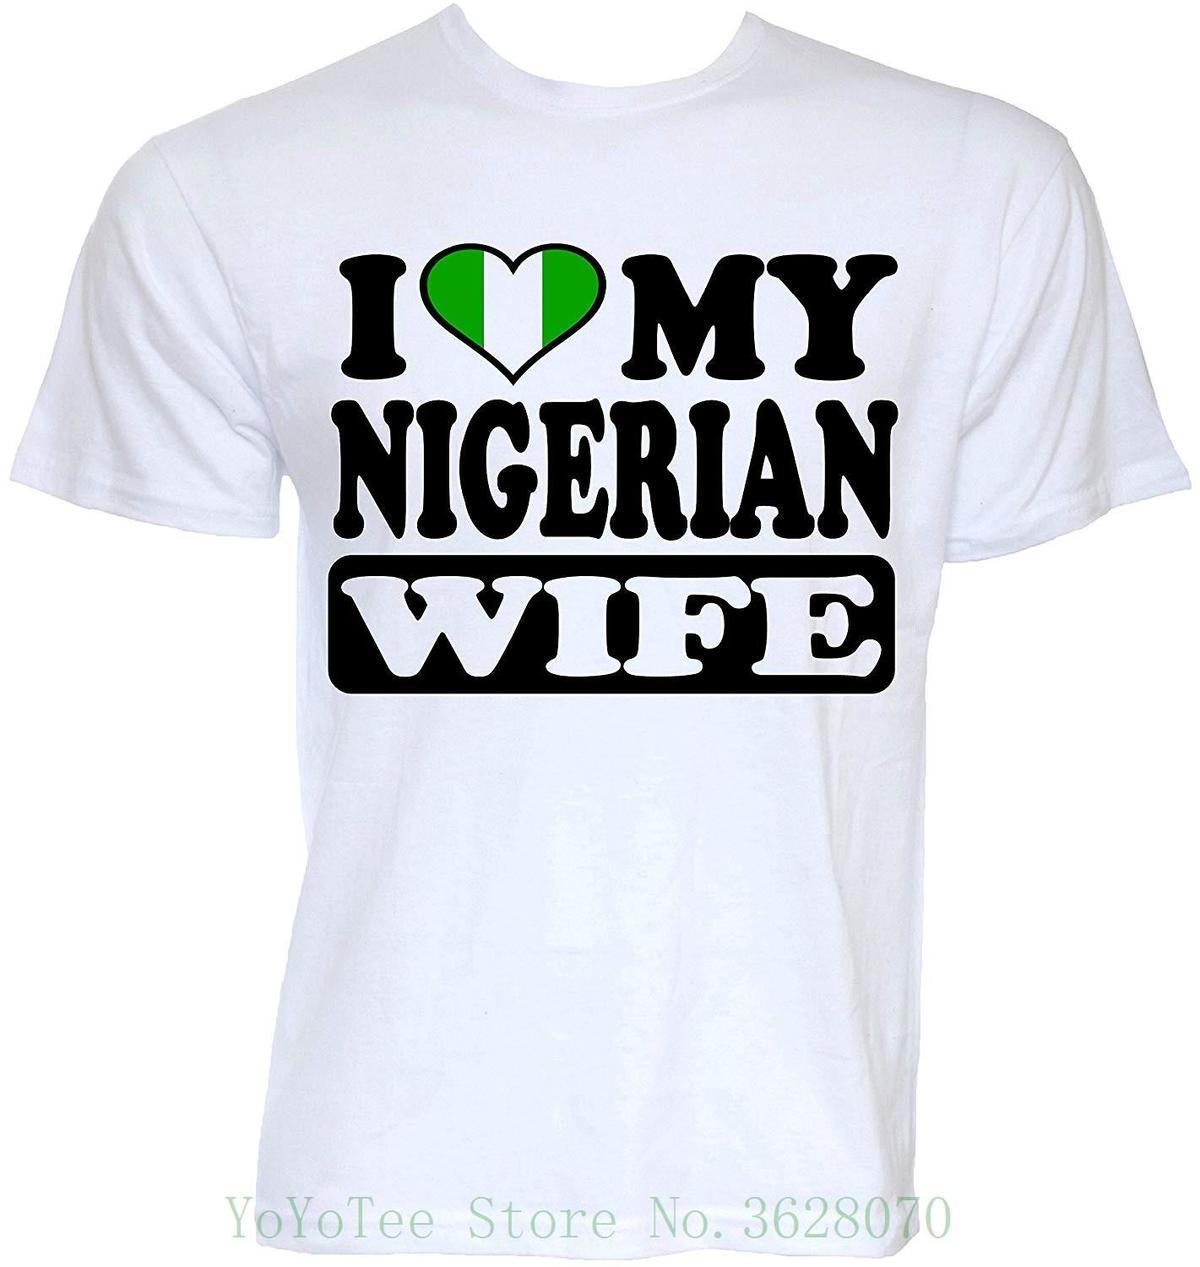 4c52df63ea Beat Tees Clothing Mens Funny Cool Novelty Nigerian Wife Nigeria Flag  Slogan Joke Gifts T Shirts Print Cotton High Quality Very Funny T Shirts  Witty Tee ...